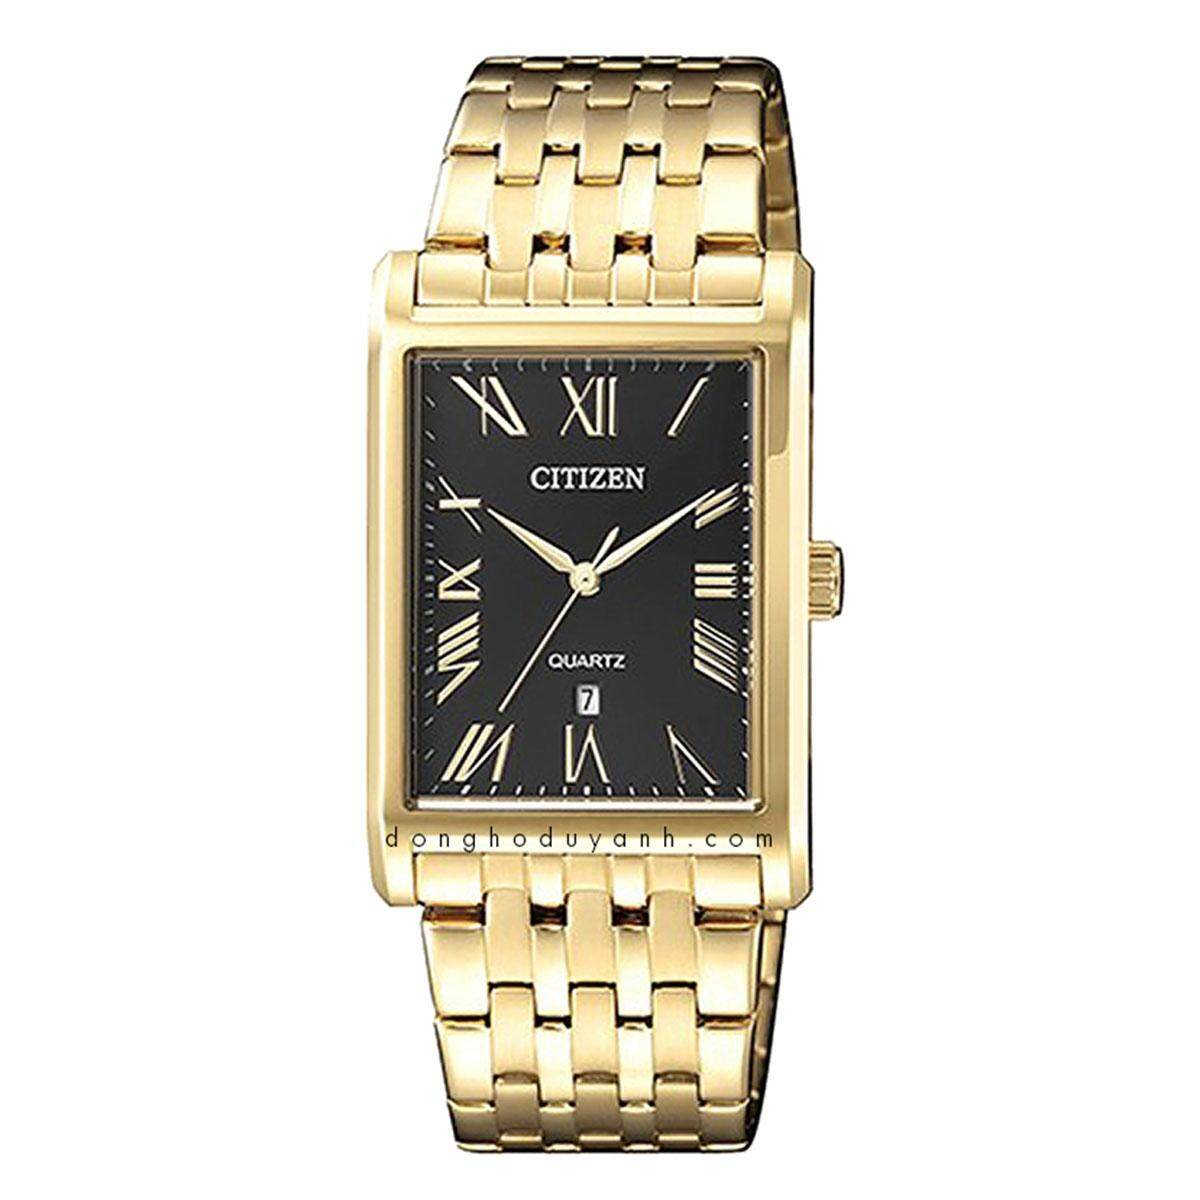 Sell Citizen Watch Cheapest Best Quality Th Store Ca4280 53e Thb 2600